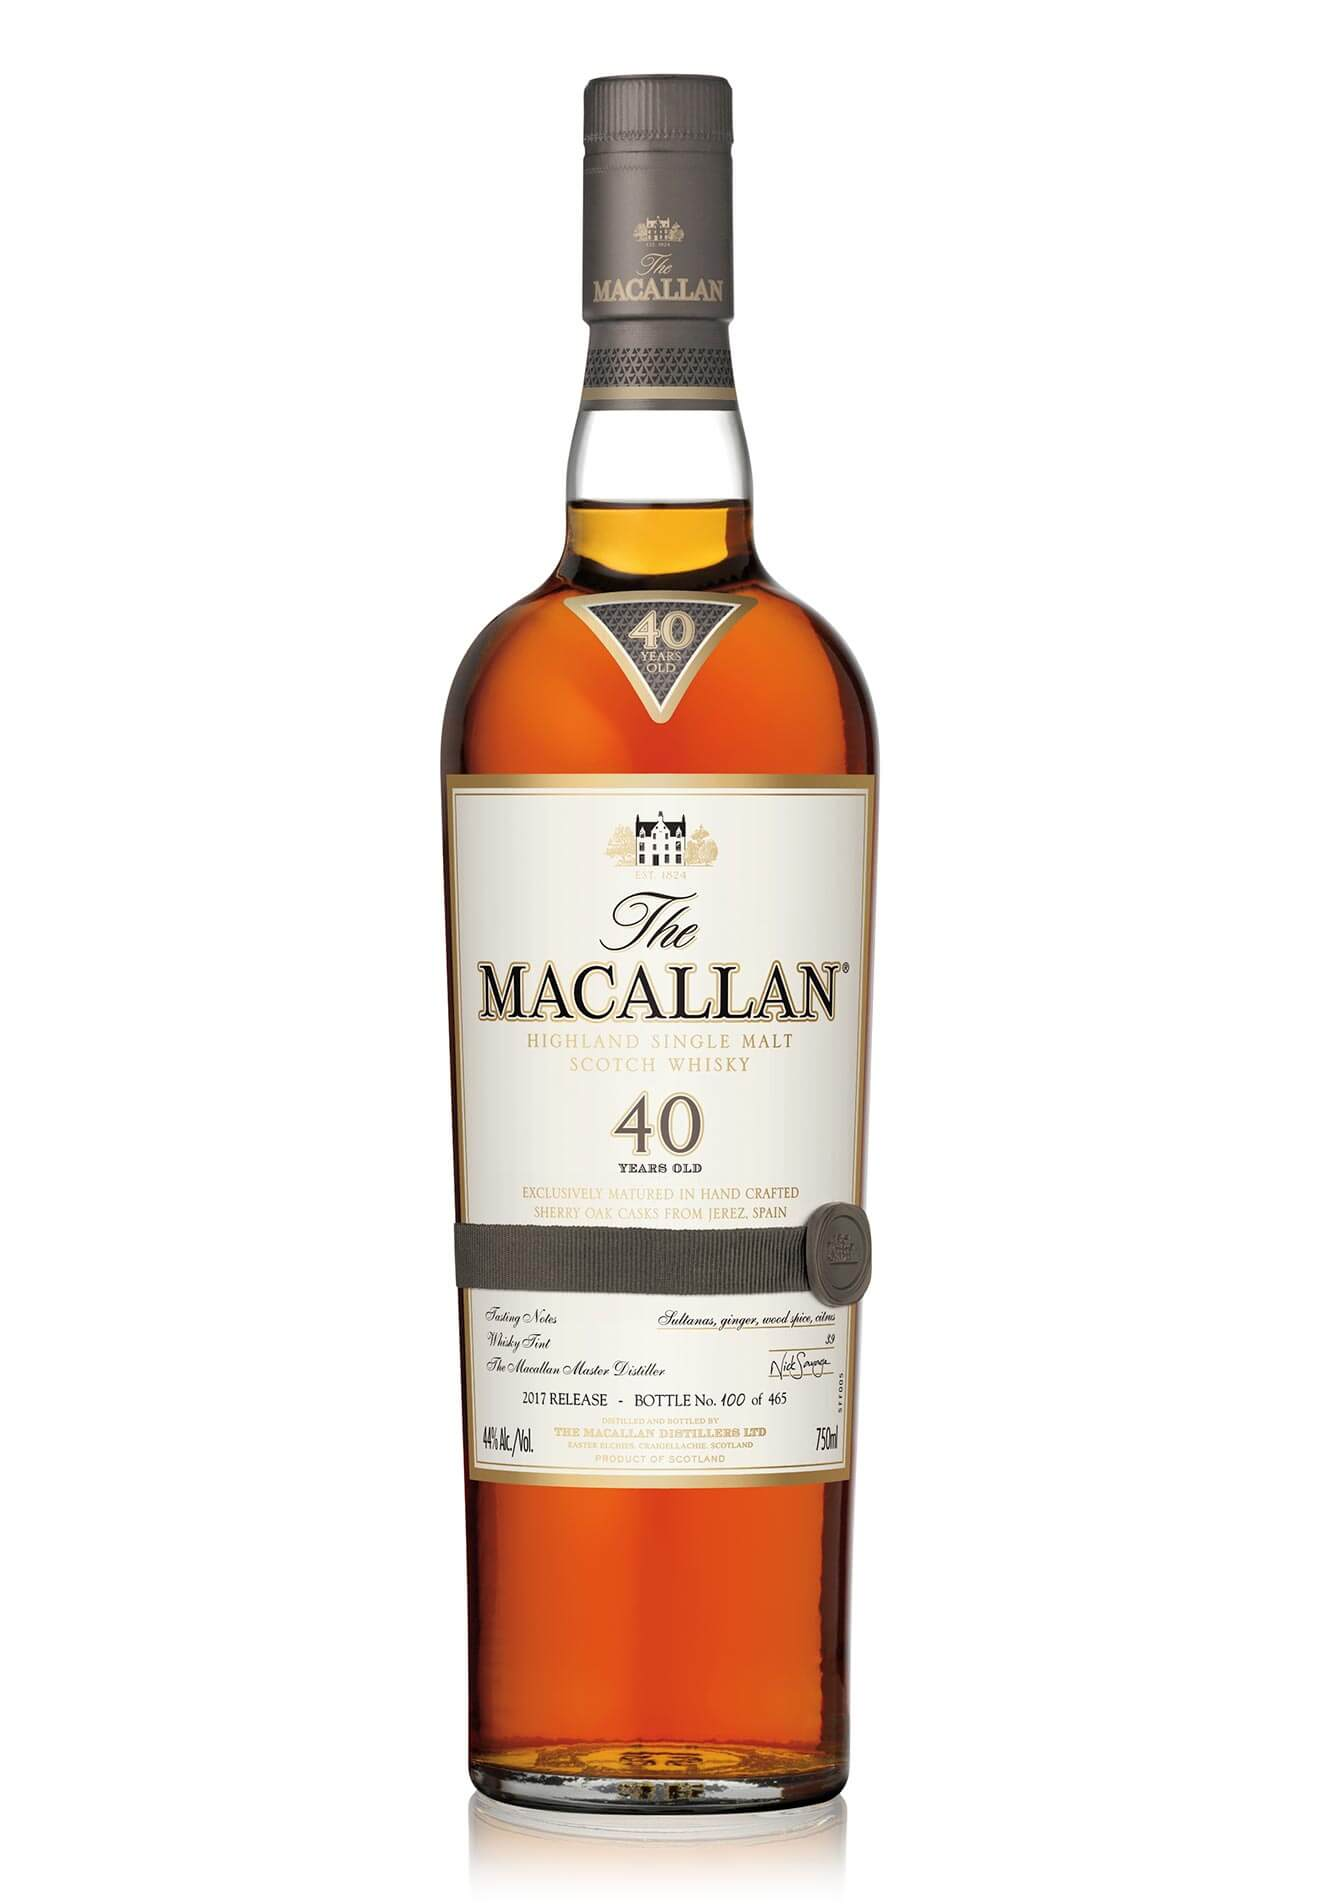 The Macallan Sherry Oak 40 Years Old Rare Single Malt, bottle on white